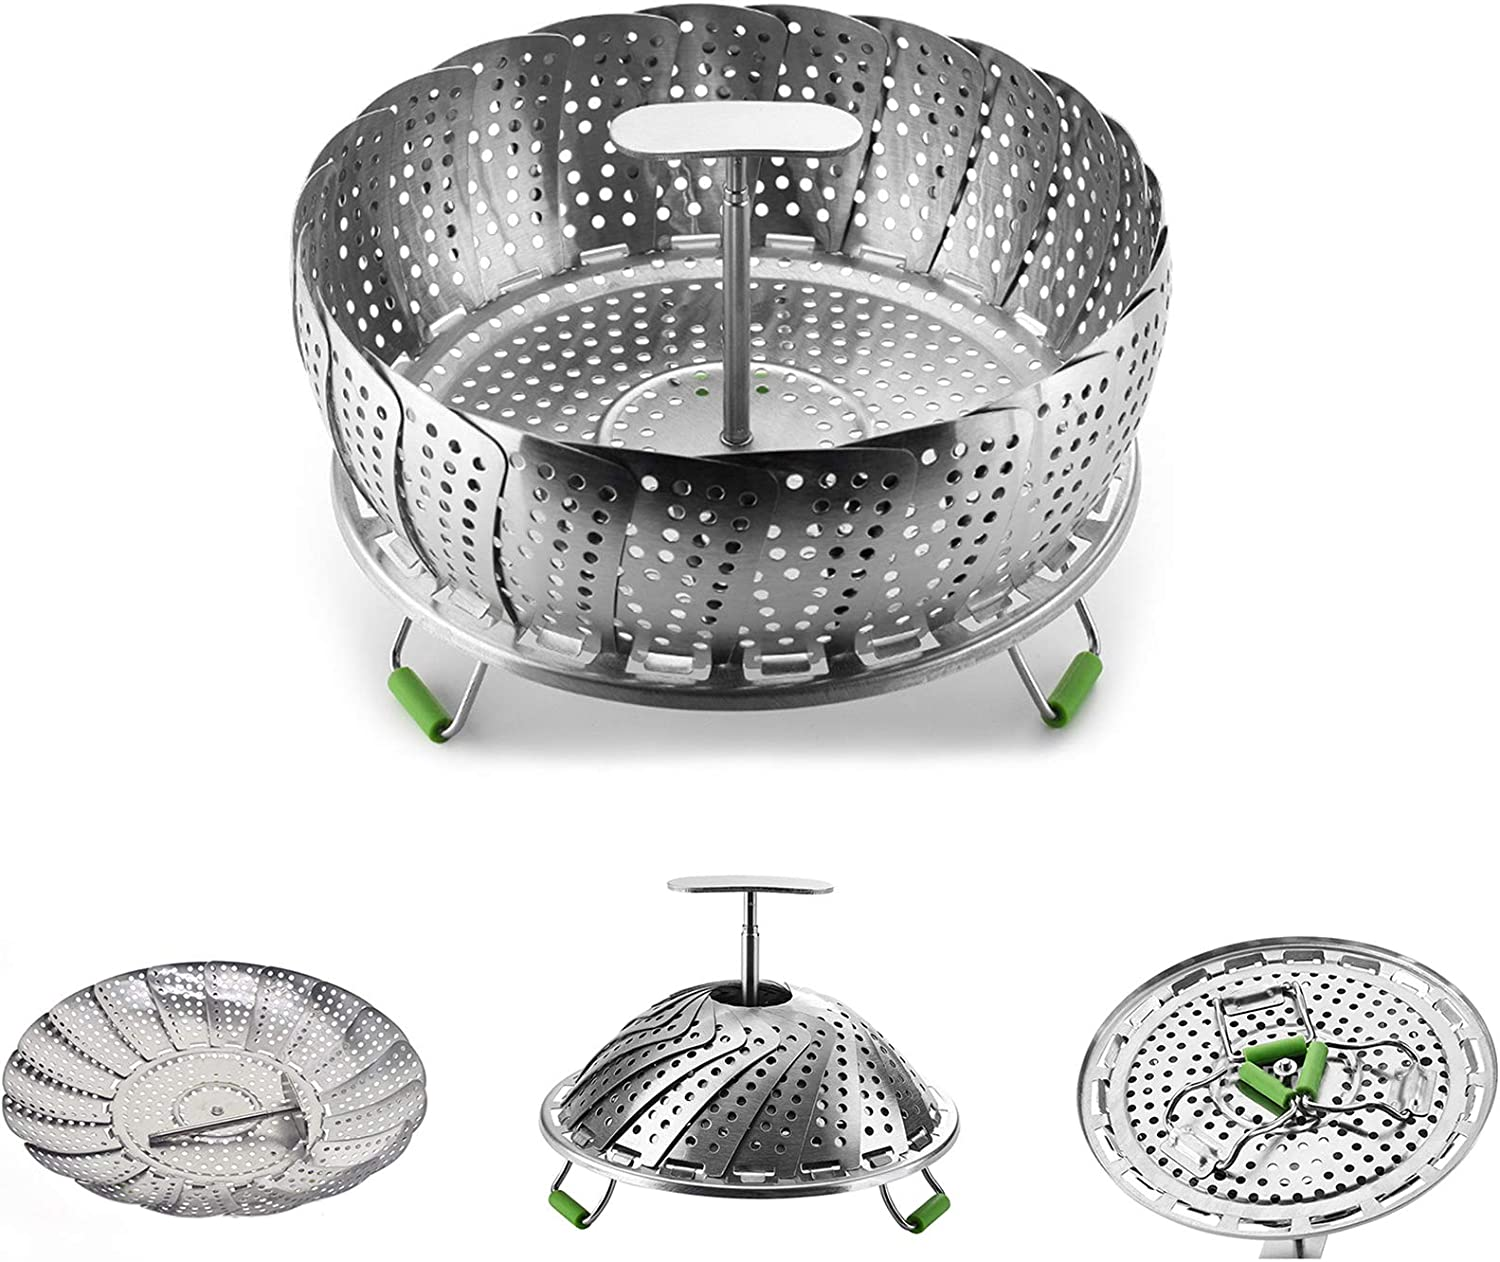 Steamer Basket Stainless Steel Vegetable Steamer Basket Folding Steamer Insert for Veggie Fish Seafood Boiled Eggs Cooking - Adjustable Expandable to fit Various Size Pot (5.1' to 9')